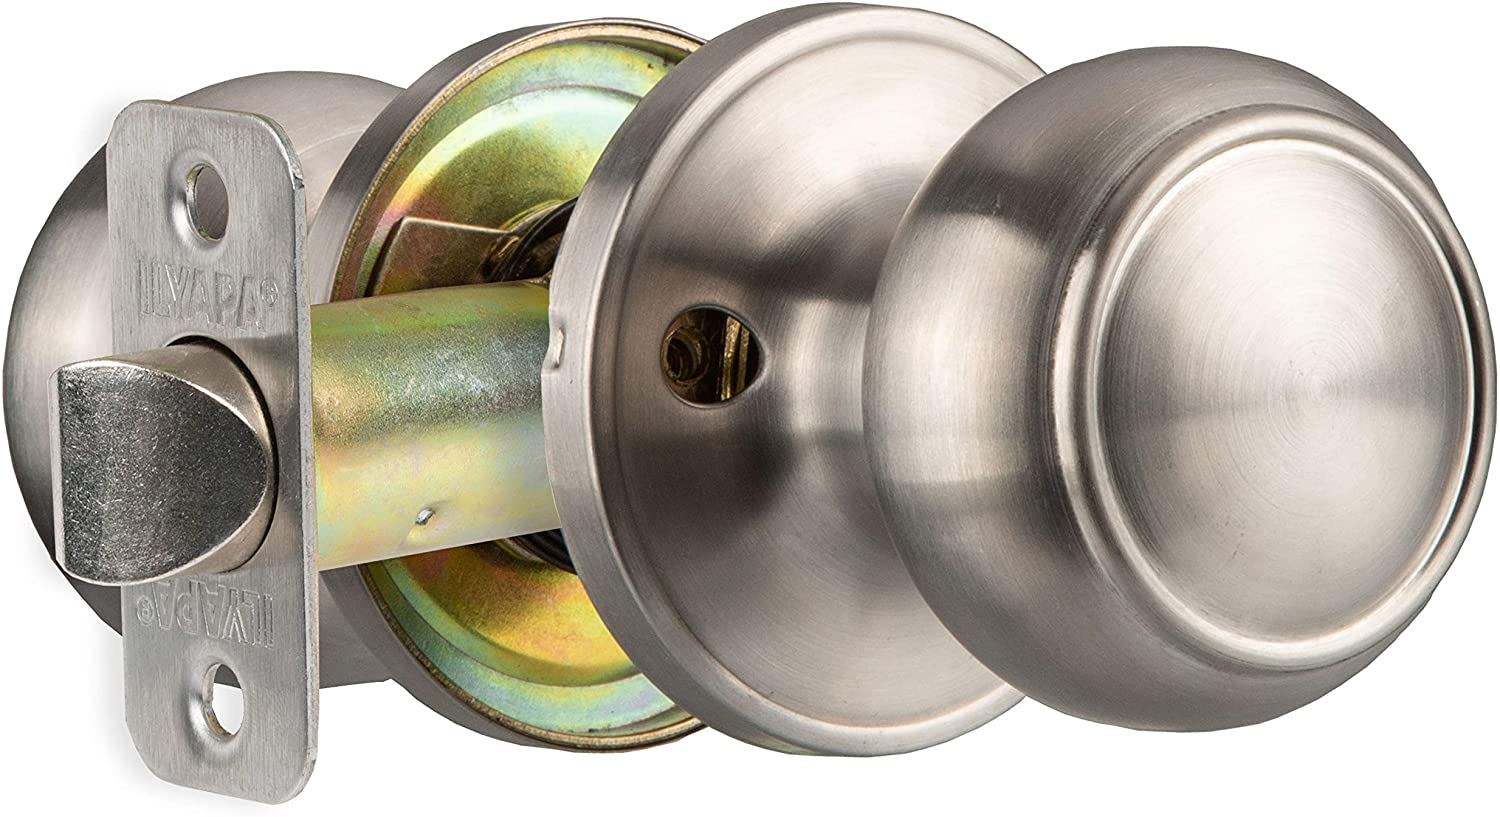 Interior Passage Door Knob - Keyless Hall and Closet Lockset - Satin Nickel Finish